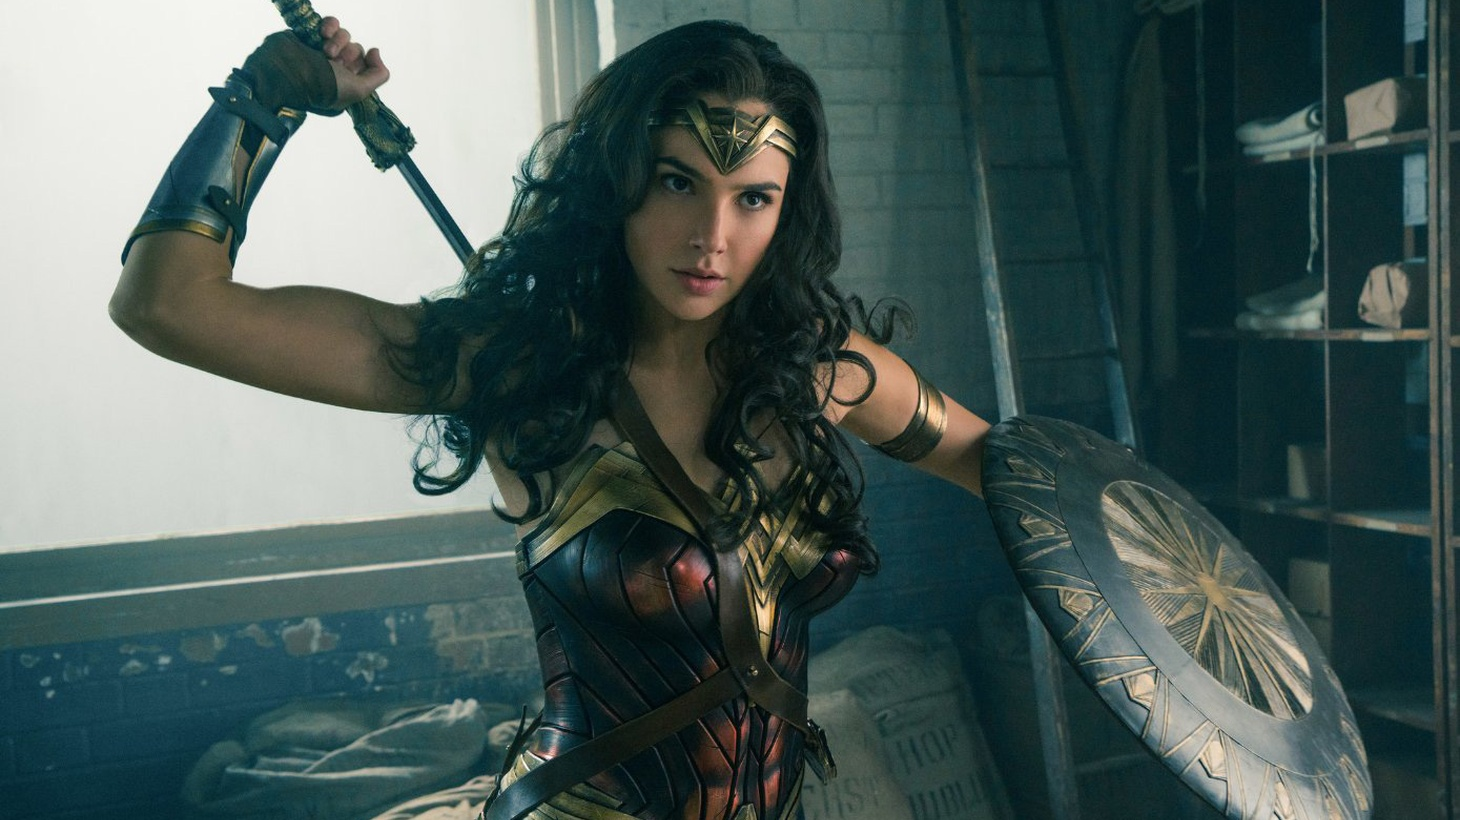 Wonder Woman puts the super back in movie heroism, and the Woman herself, as played by Gal Gadot, is the dazzling embodiment of female empowerment.